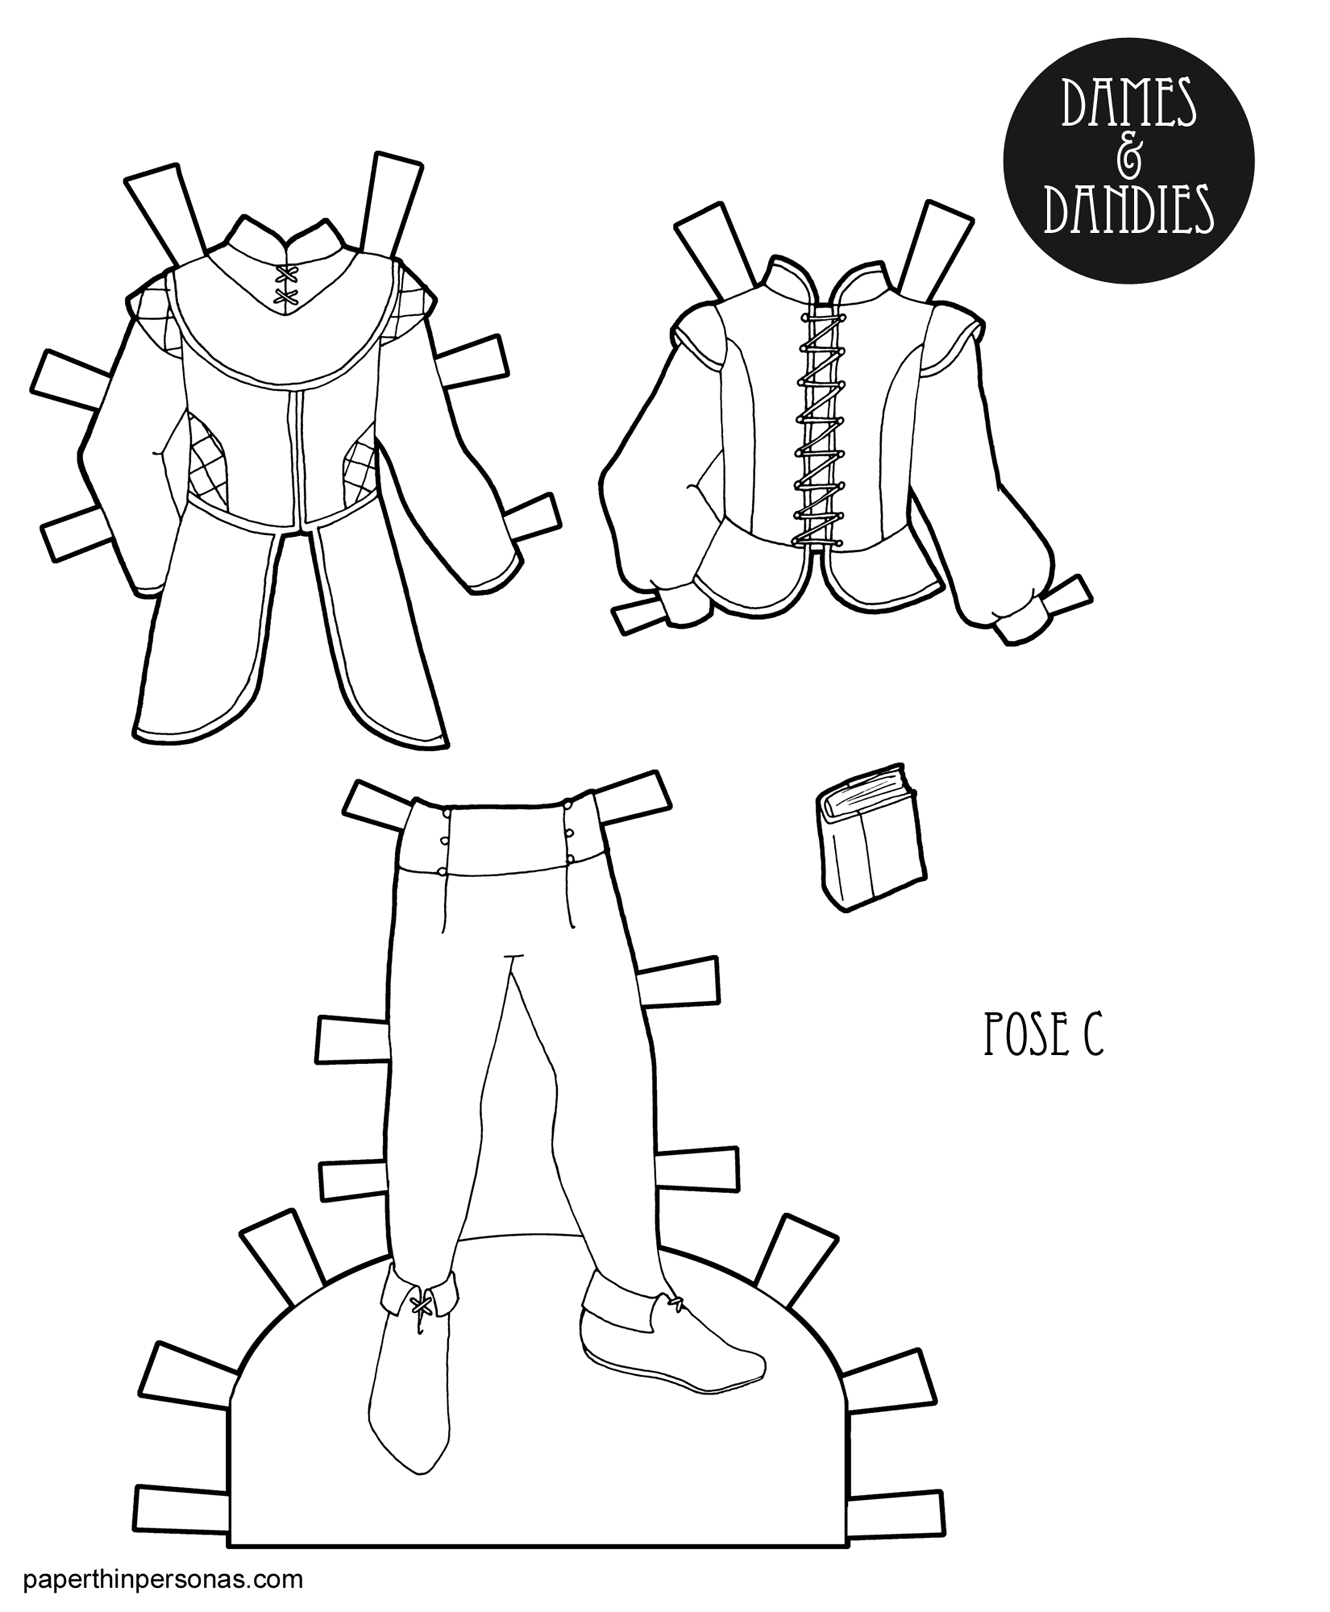 A Paper Doll Coloring Page Printable Featuring Guy Paper Doll